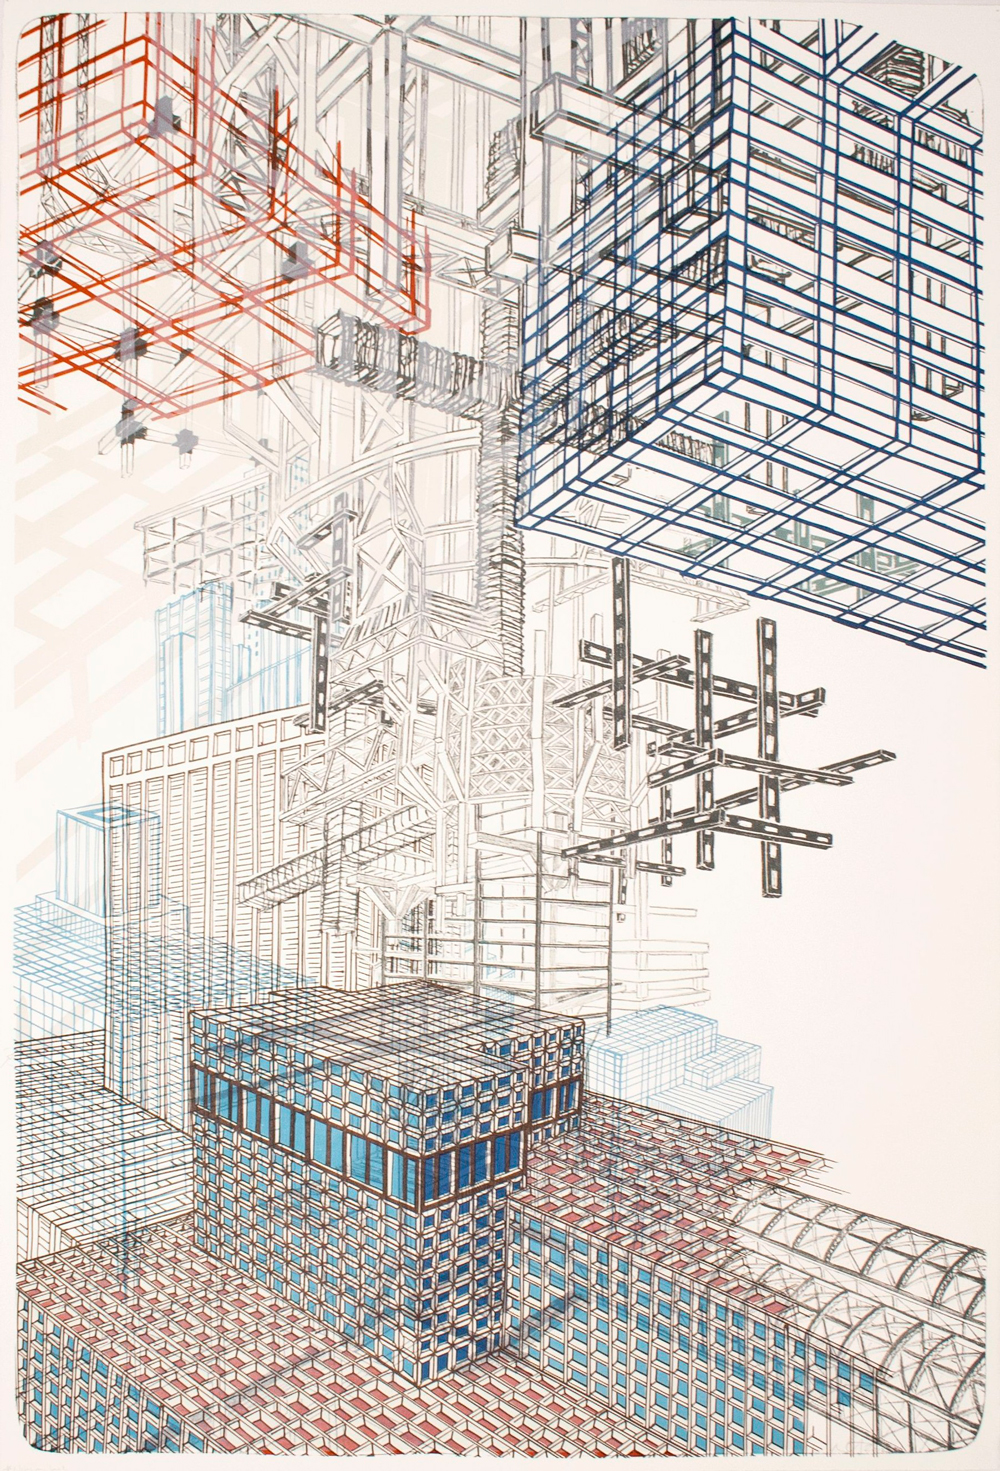 """Infrastructure +2  2012; Lithography on paper; 44"""" x 29 3/4""""; Published by Tamarind Institute; Edition of 12"""